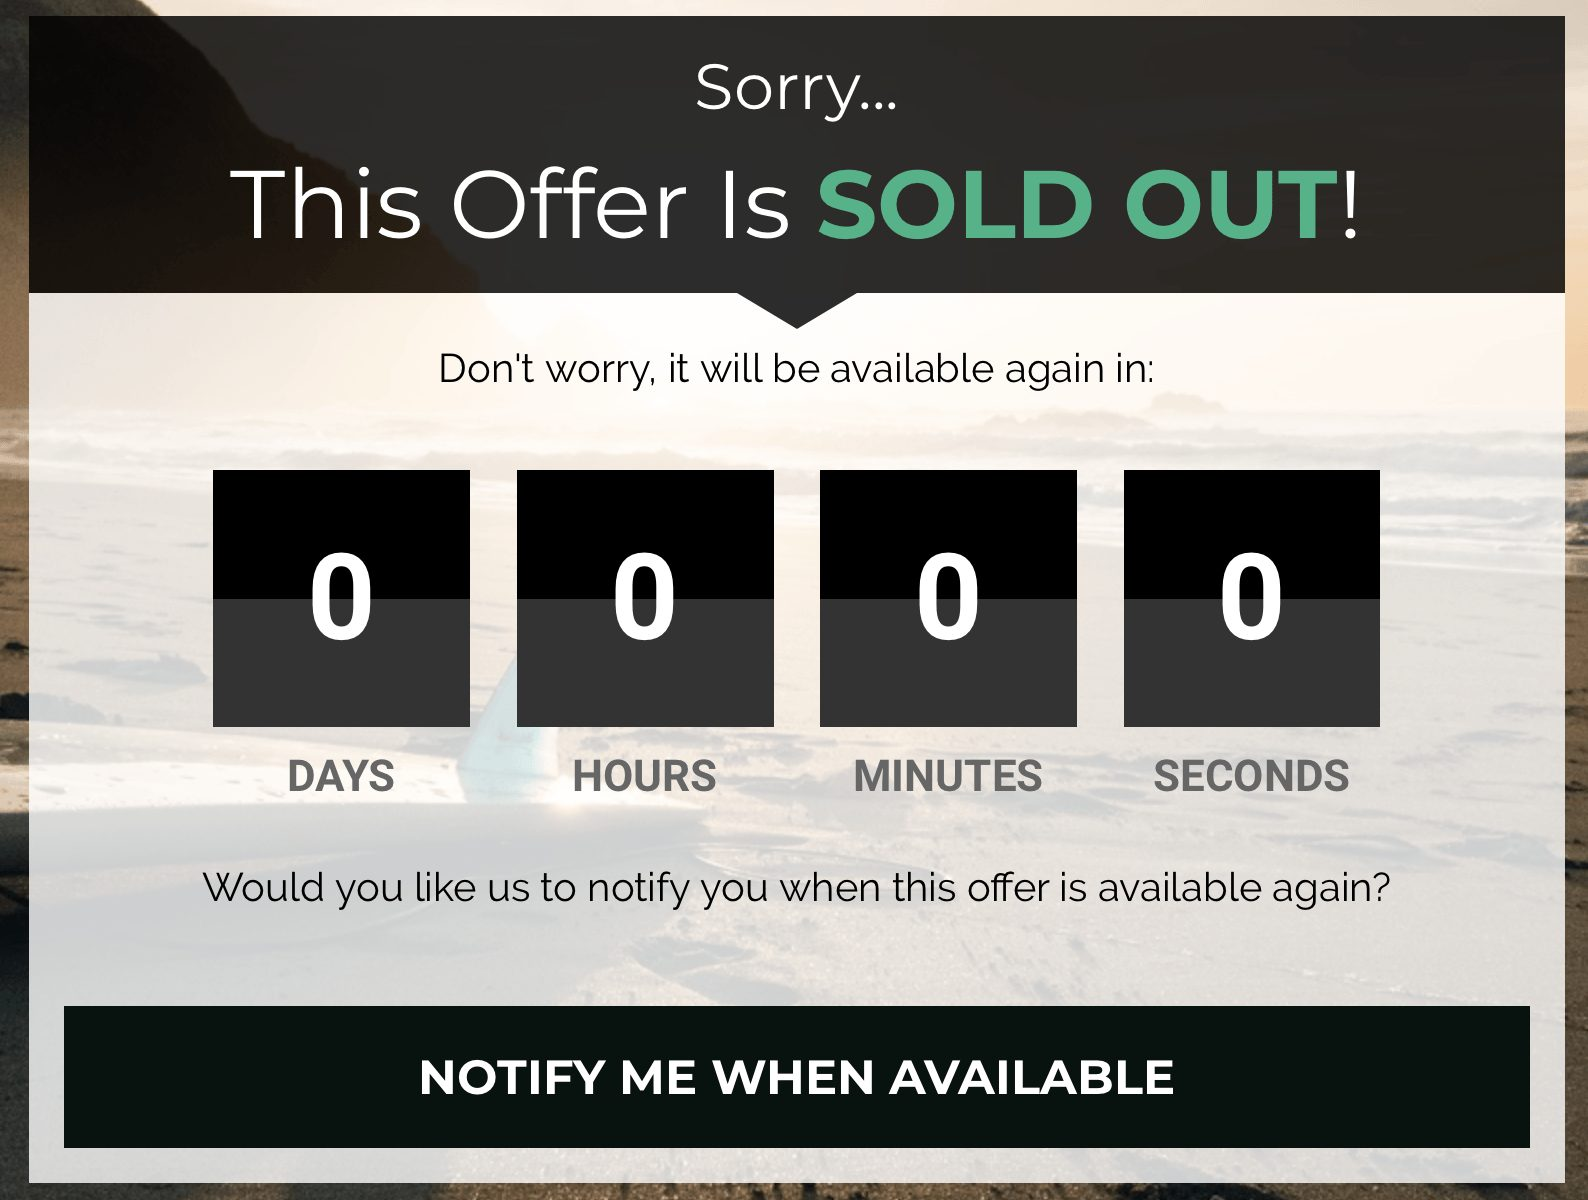 Leadpages example of creating a sense of scarcity for users to act